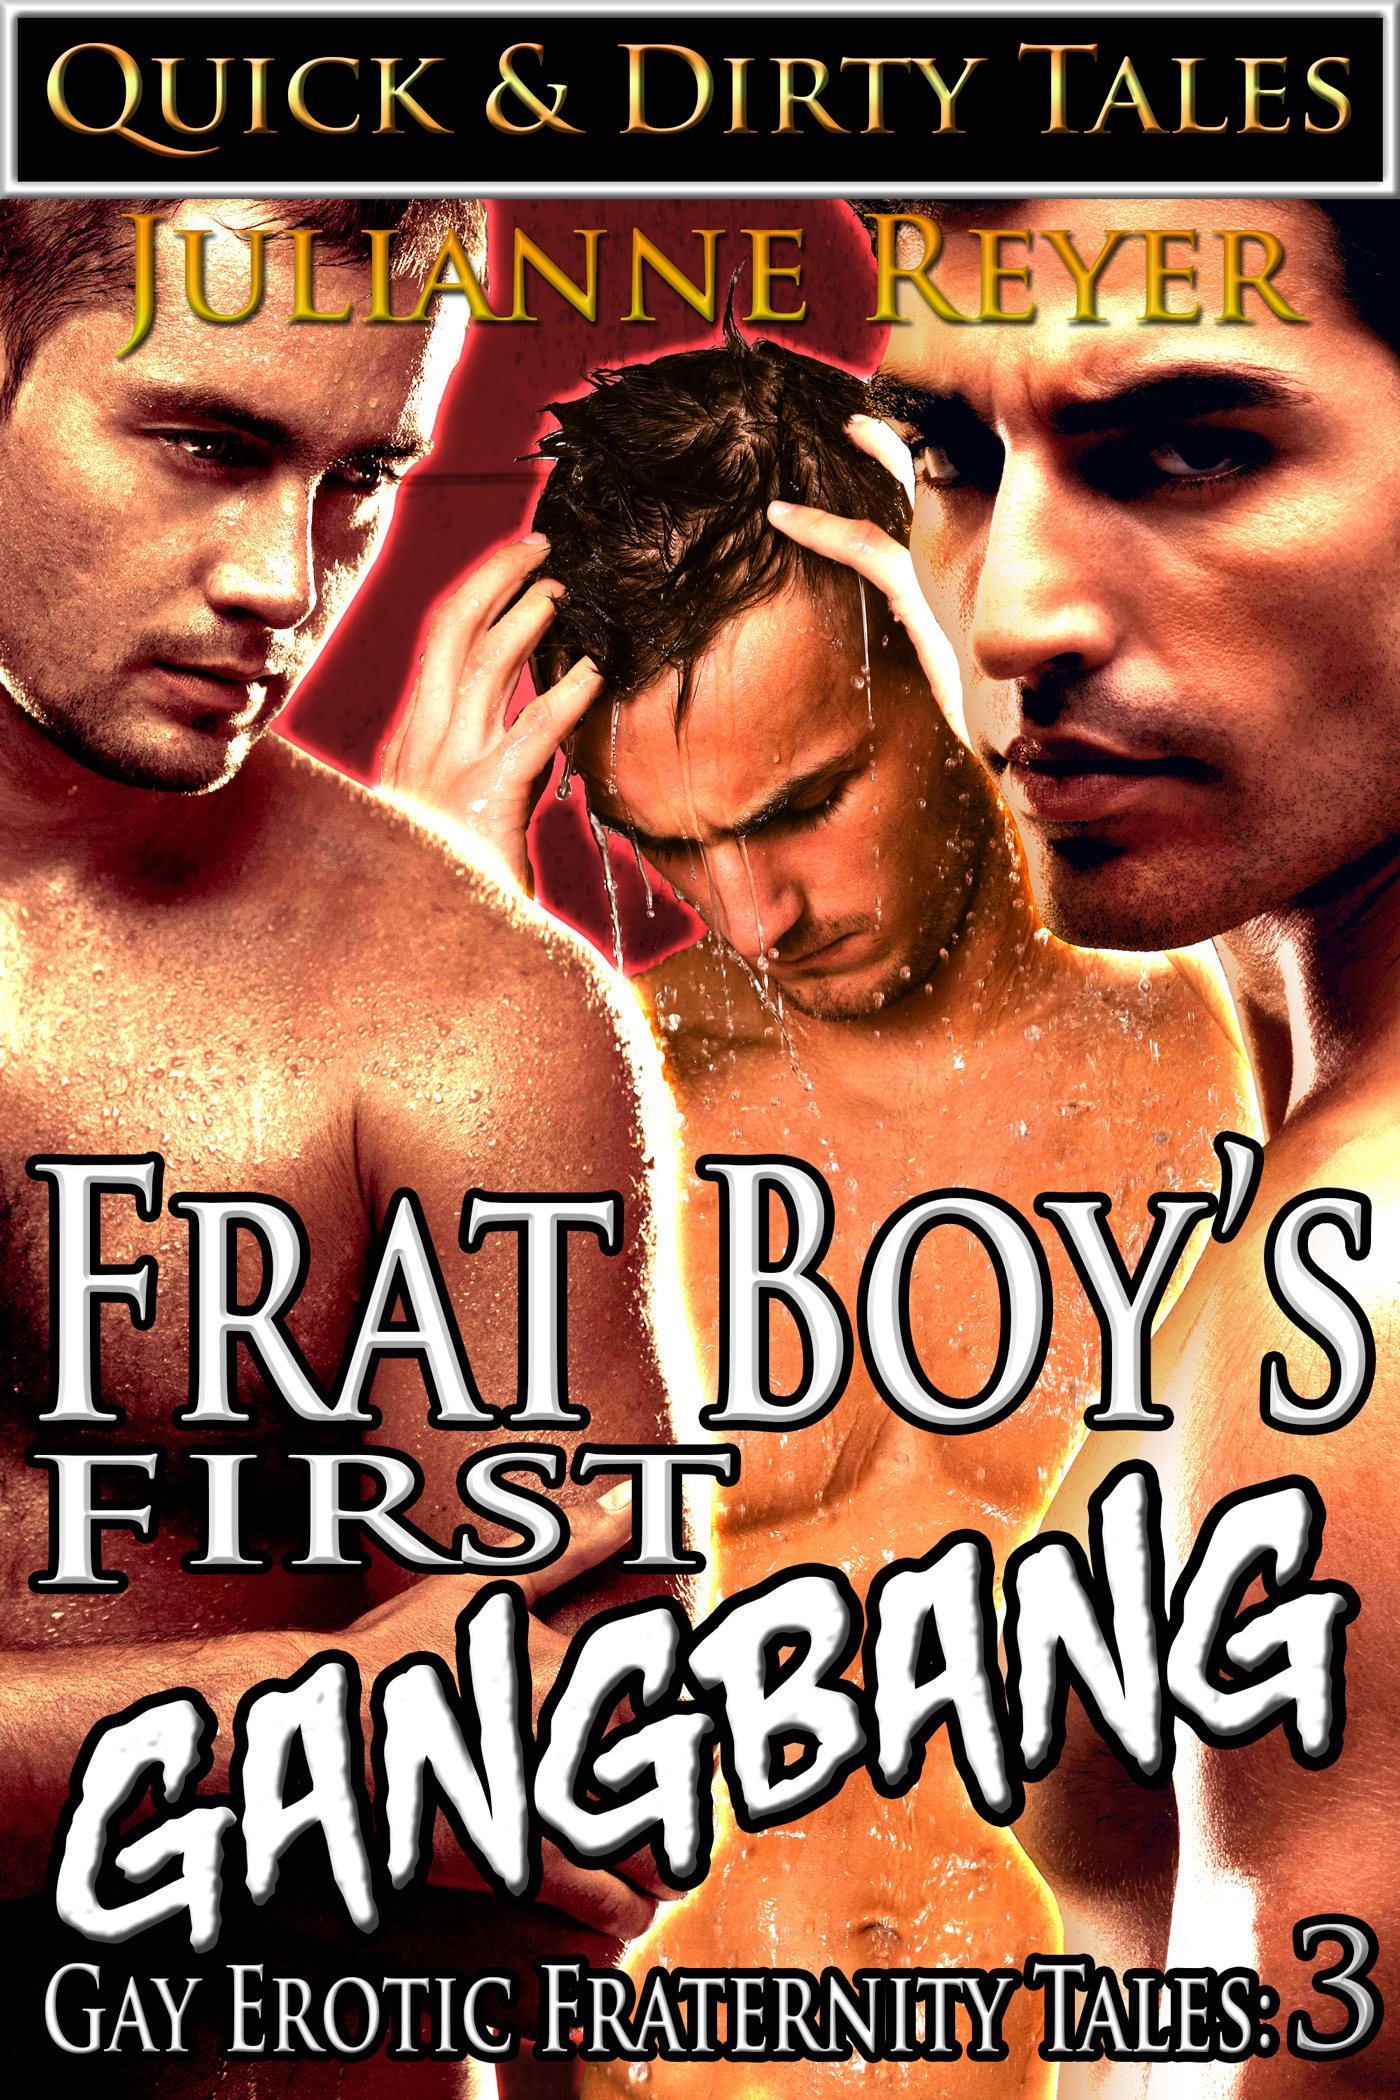 Frat Boys First Gangbang Gay Erotica